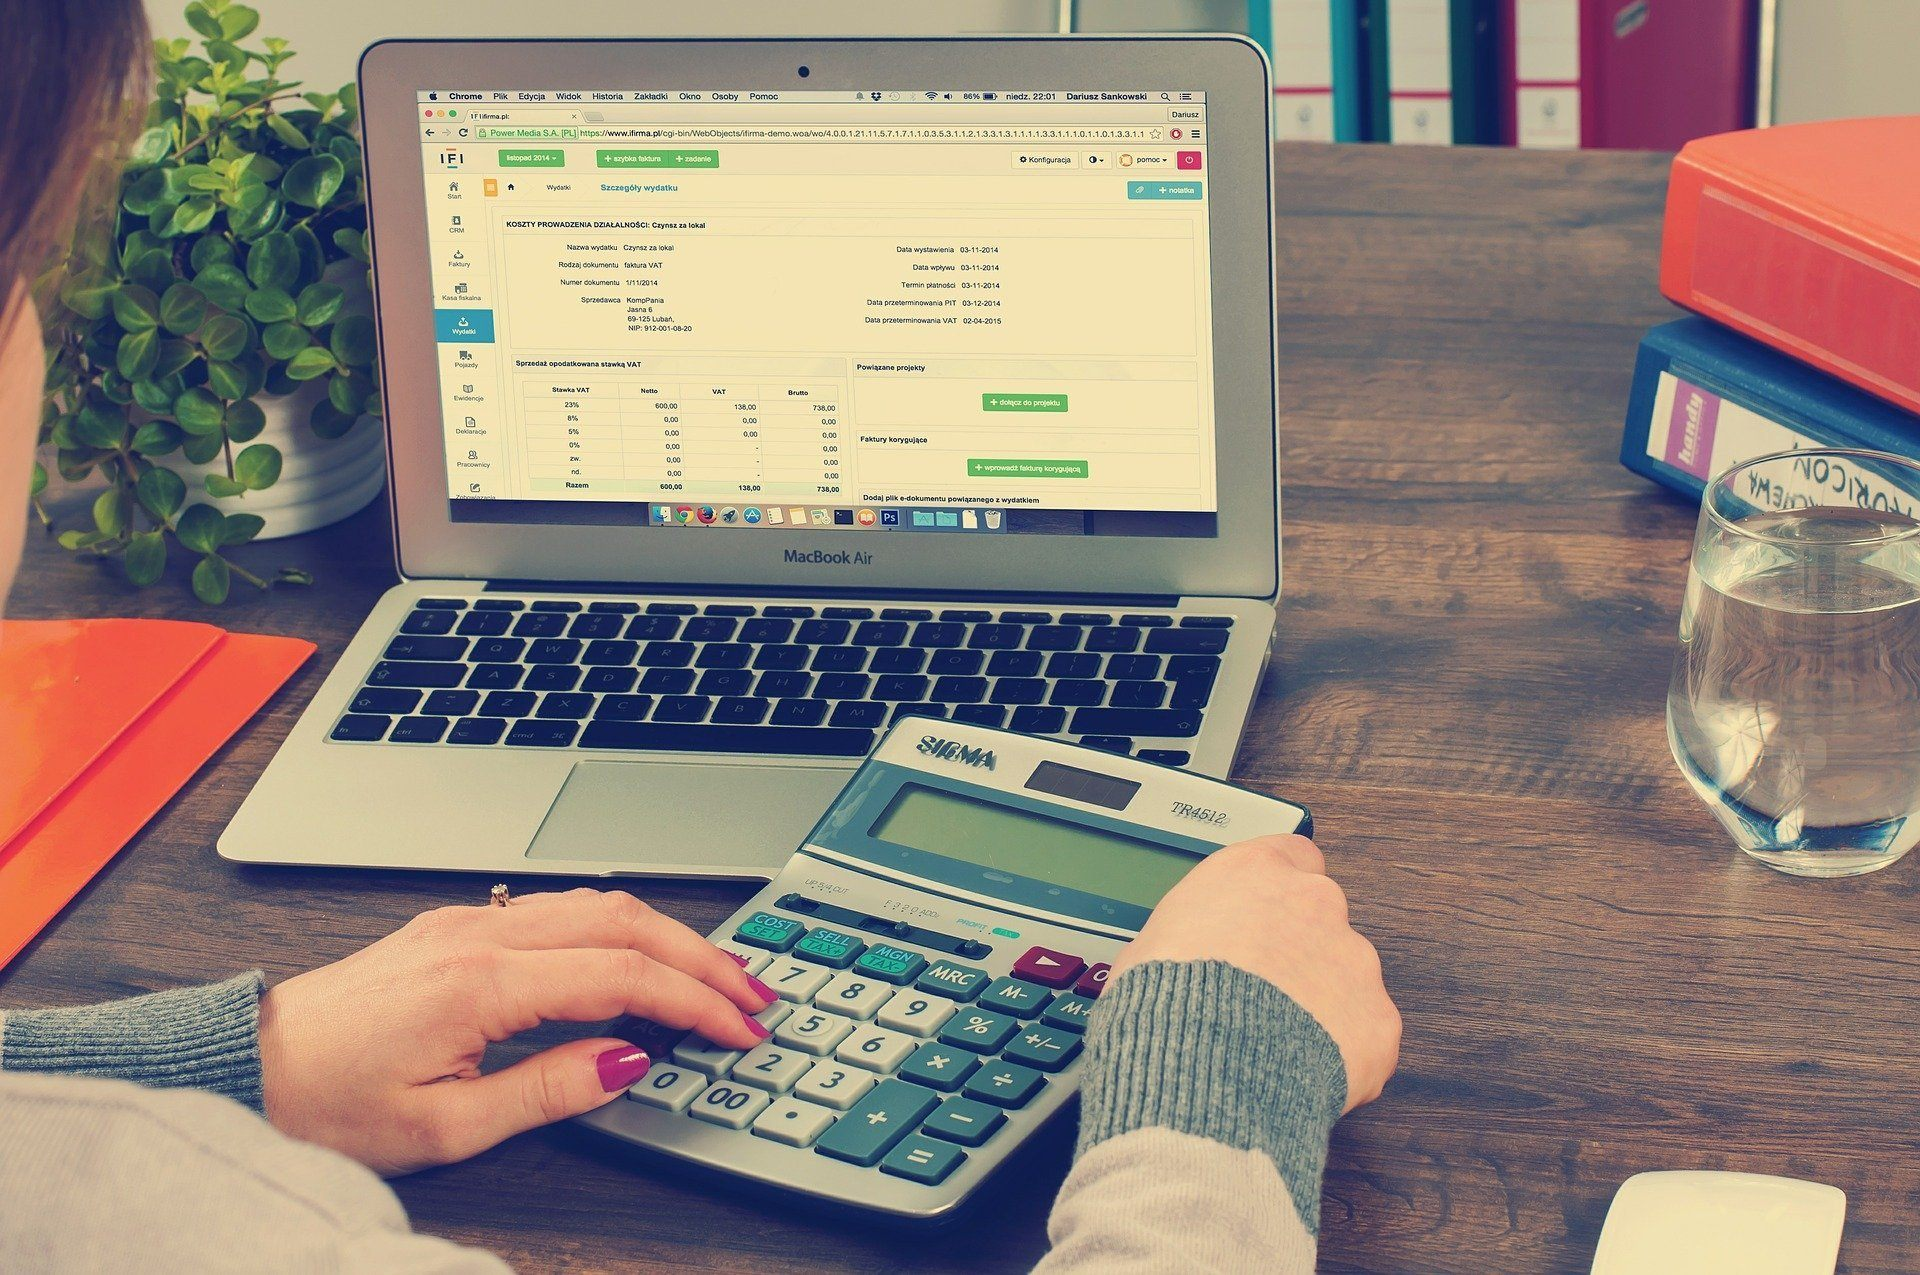 Image of Accounting on a laptop